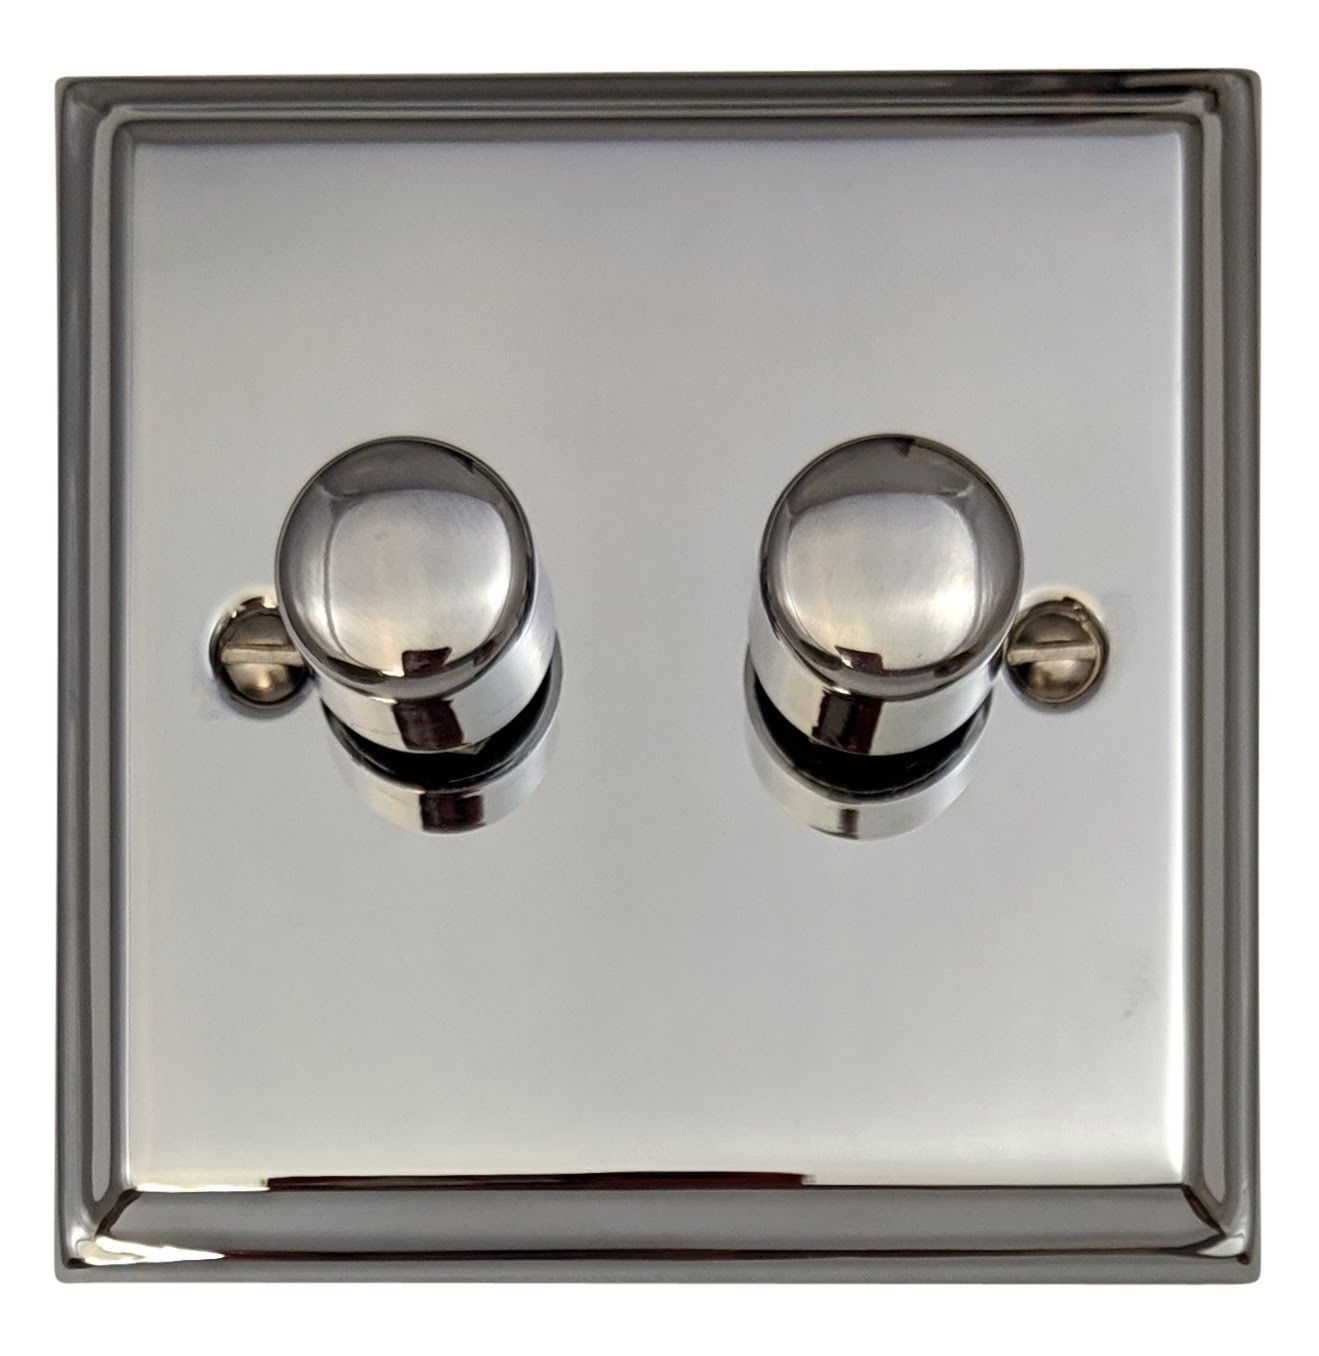 G&H DC12 Deco Plate Polished Chrome 2 Gang 1 or 2 Way 40-400W Dimmer Switch